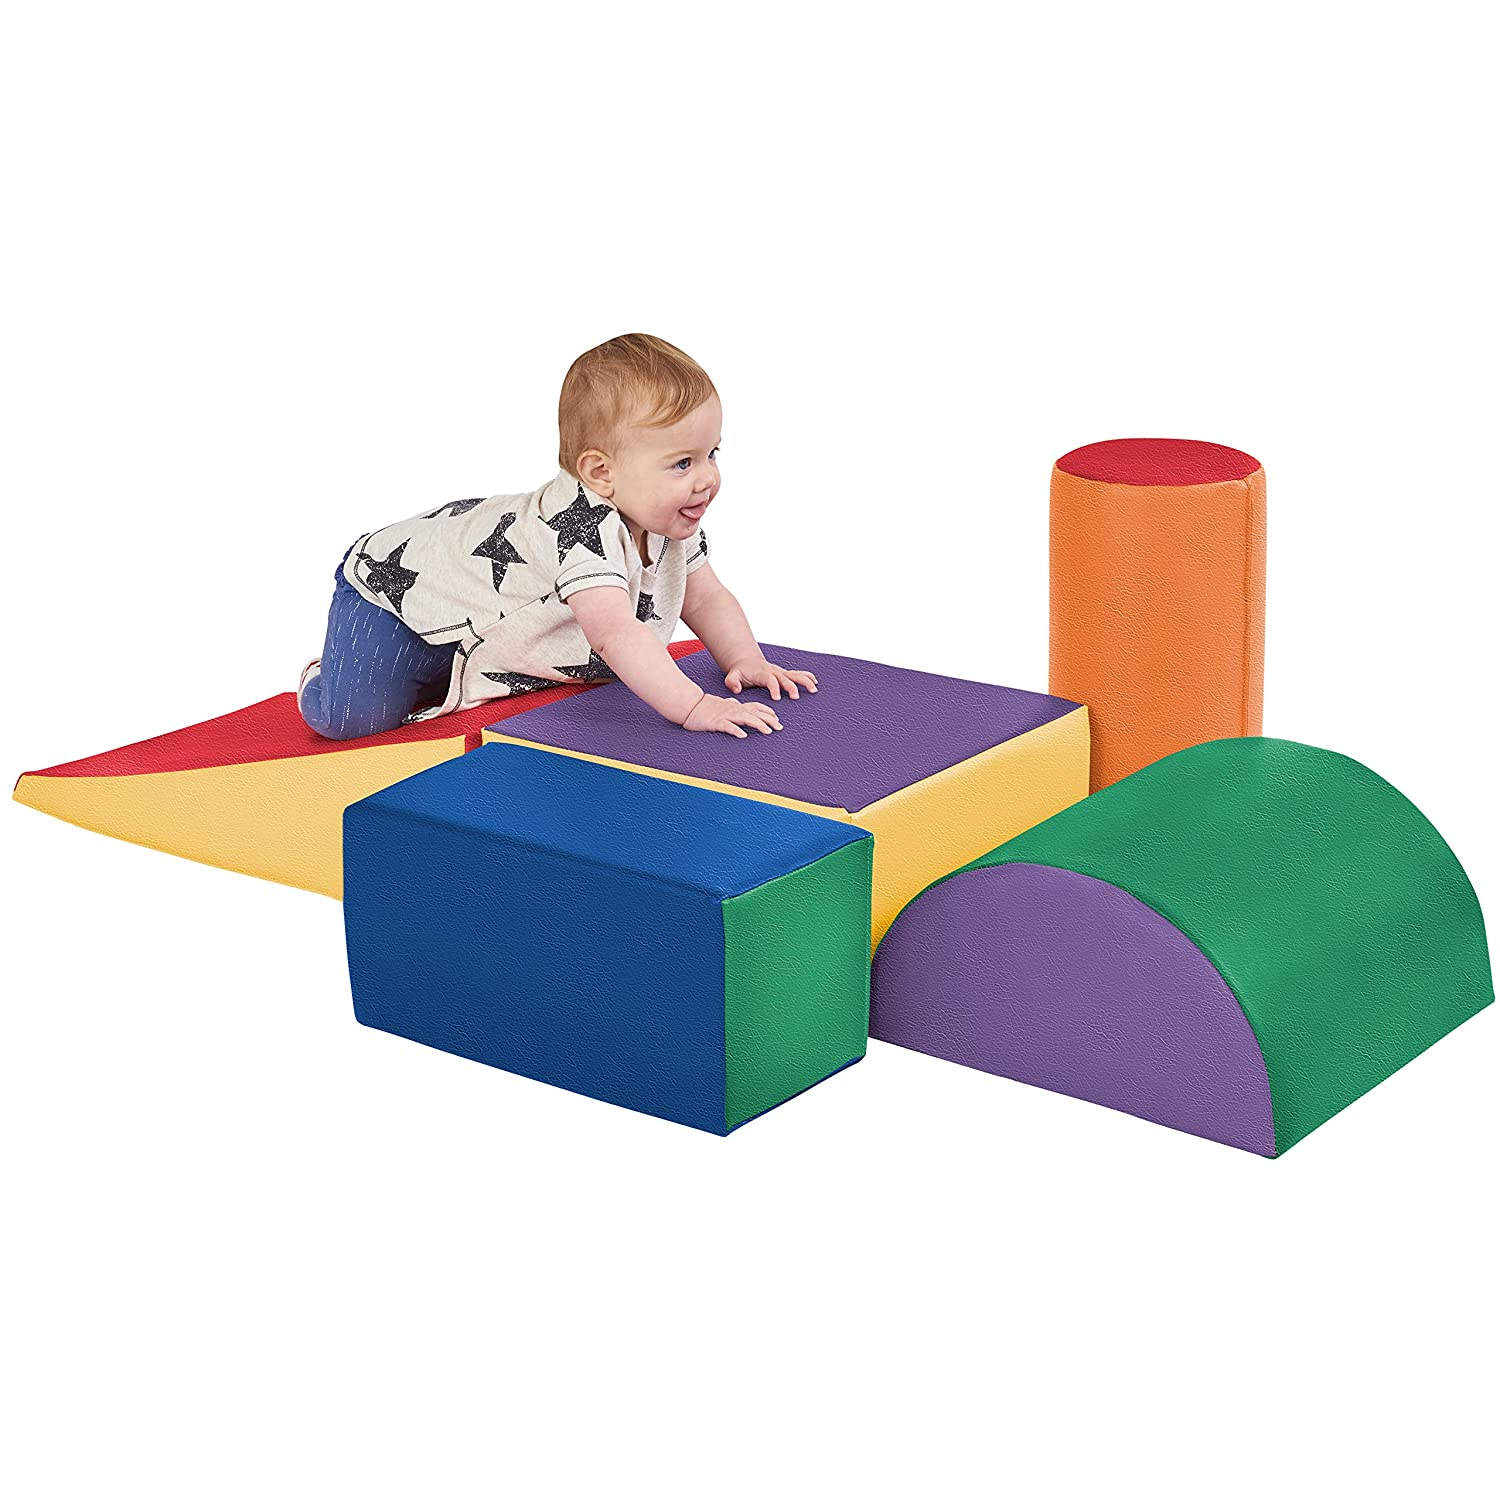 A baby playing with ECR4 Kids Softzone Climb and Crawl Play set.